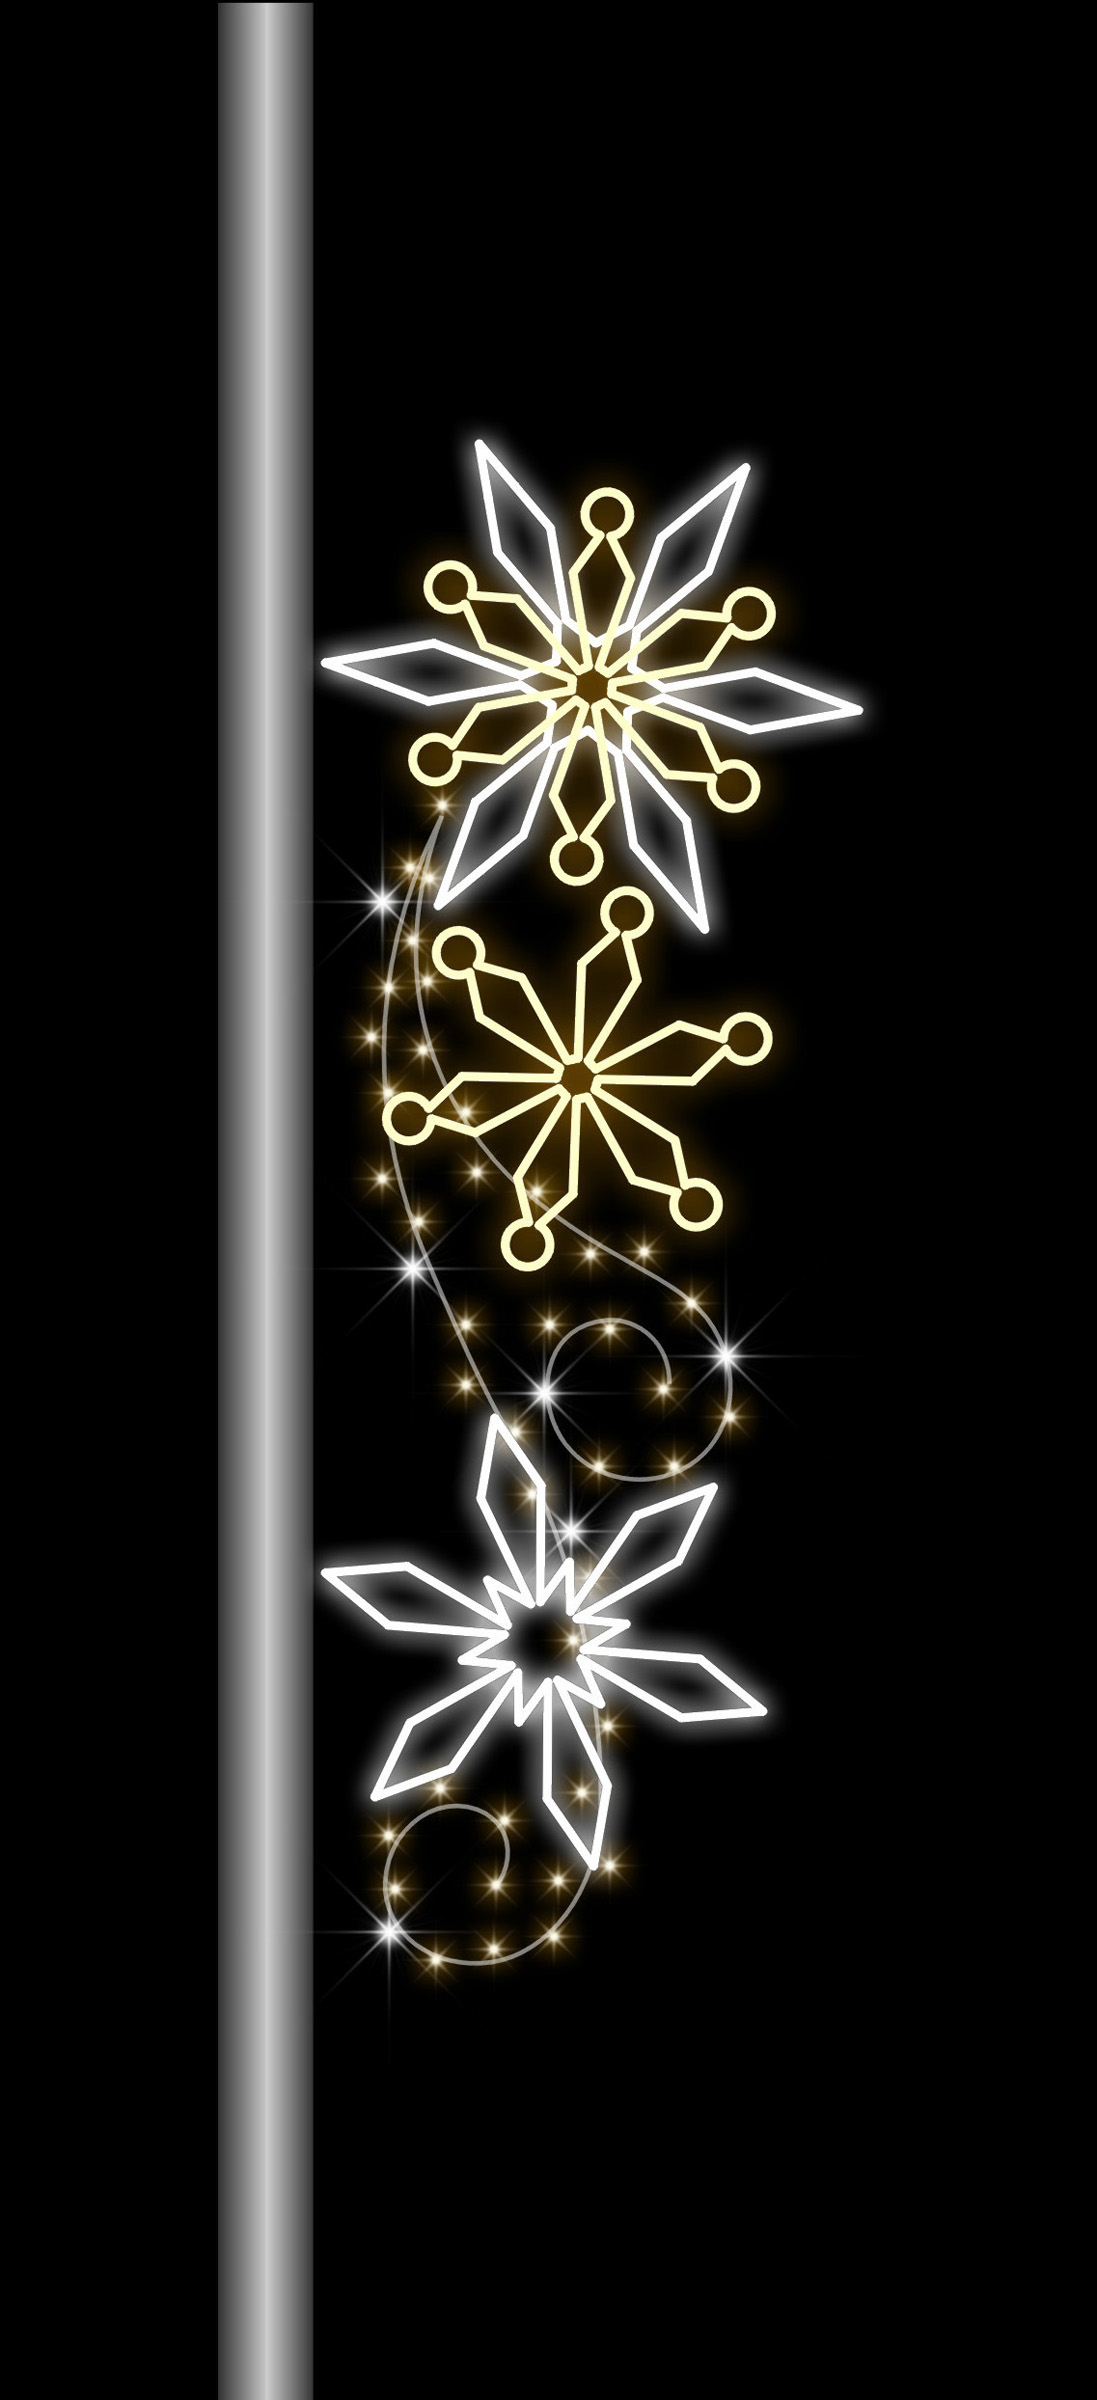 6' POLE MOUNT WITH SNOWFLAKES